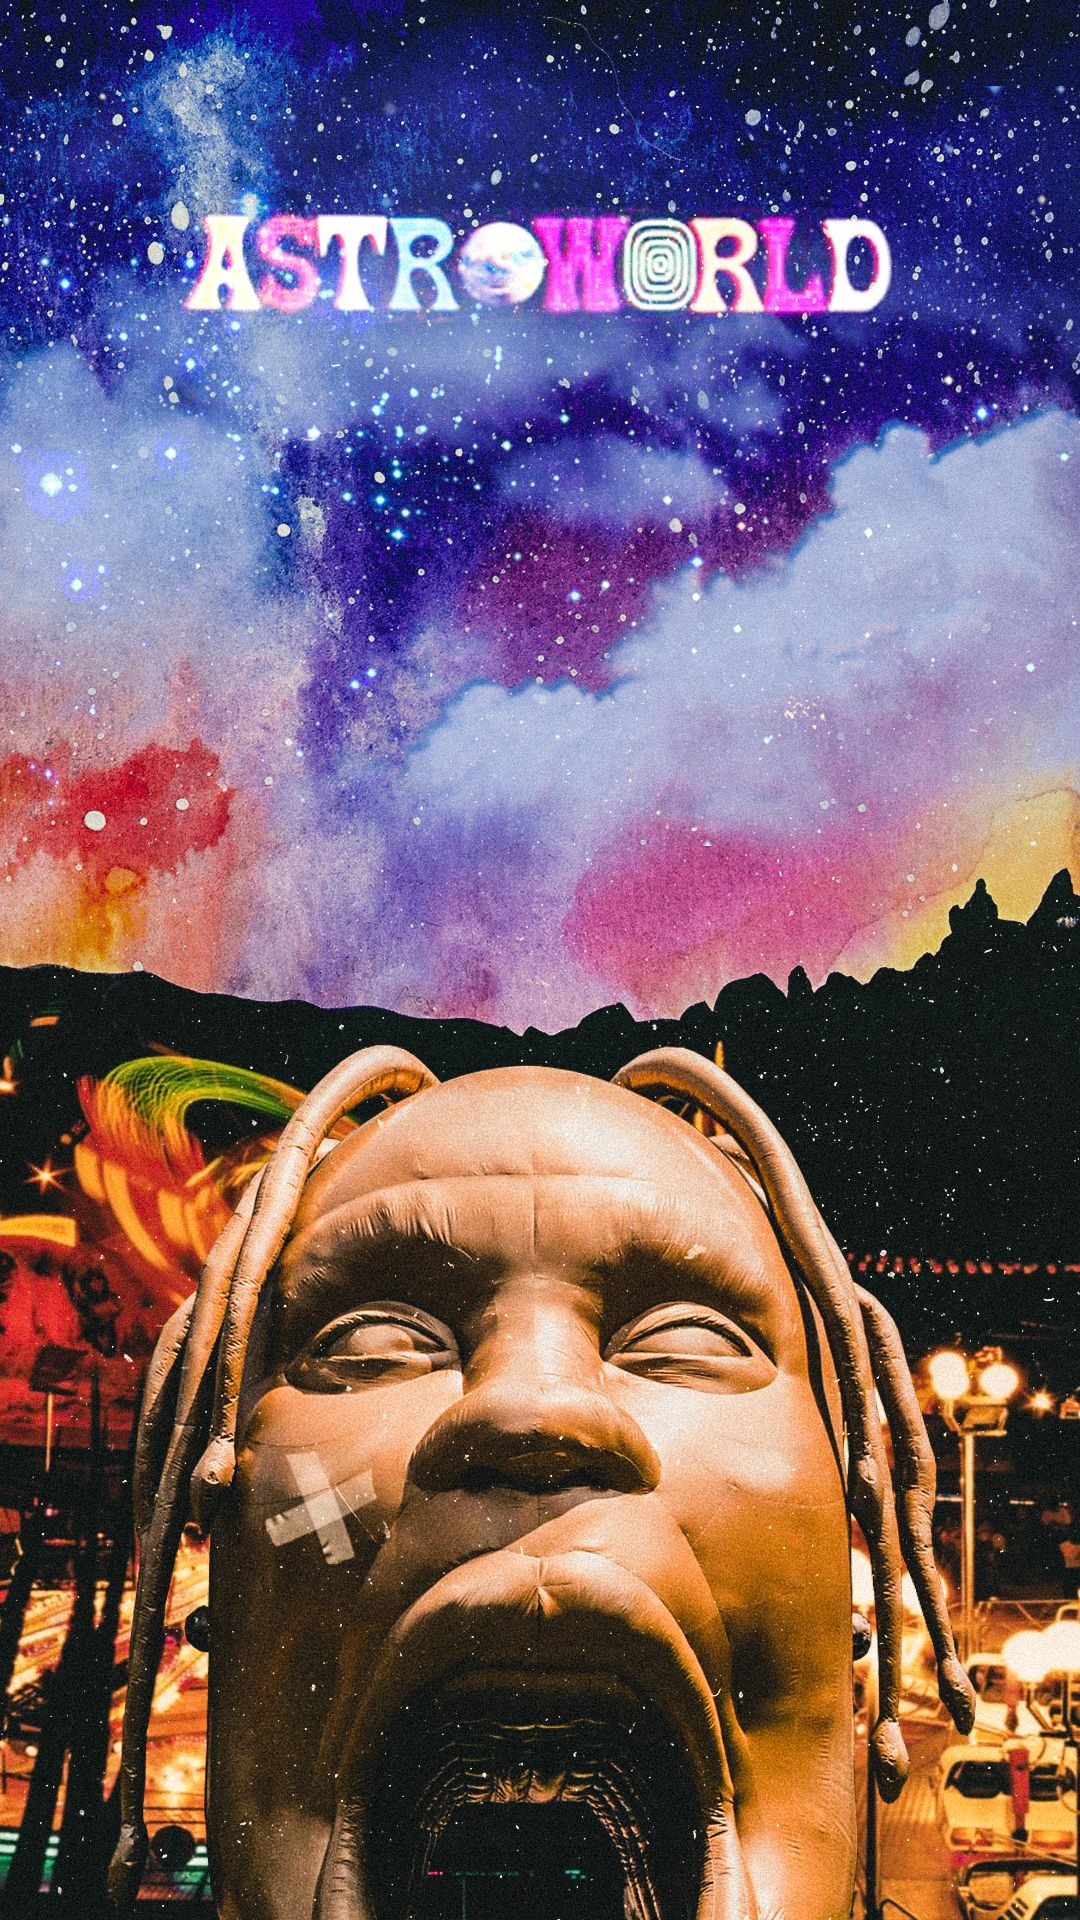 Astroworld Wallpaper Rap Wallpaper Wallpaper Backgrounds Travis Scott 177411 Hd Wallpaper Backgrounds Download